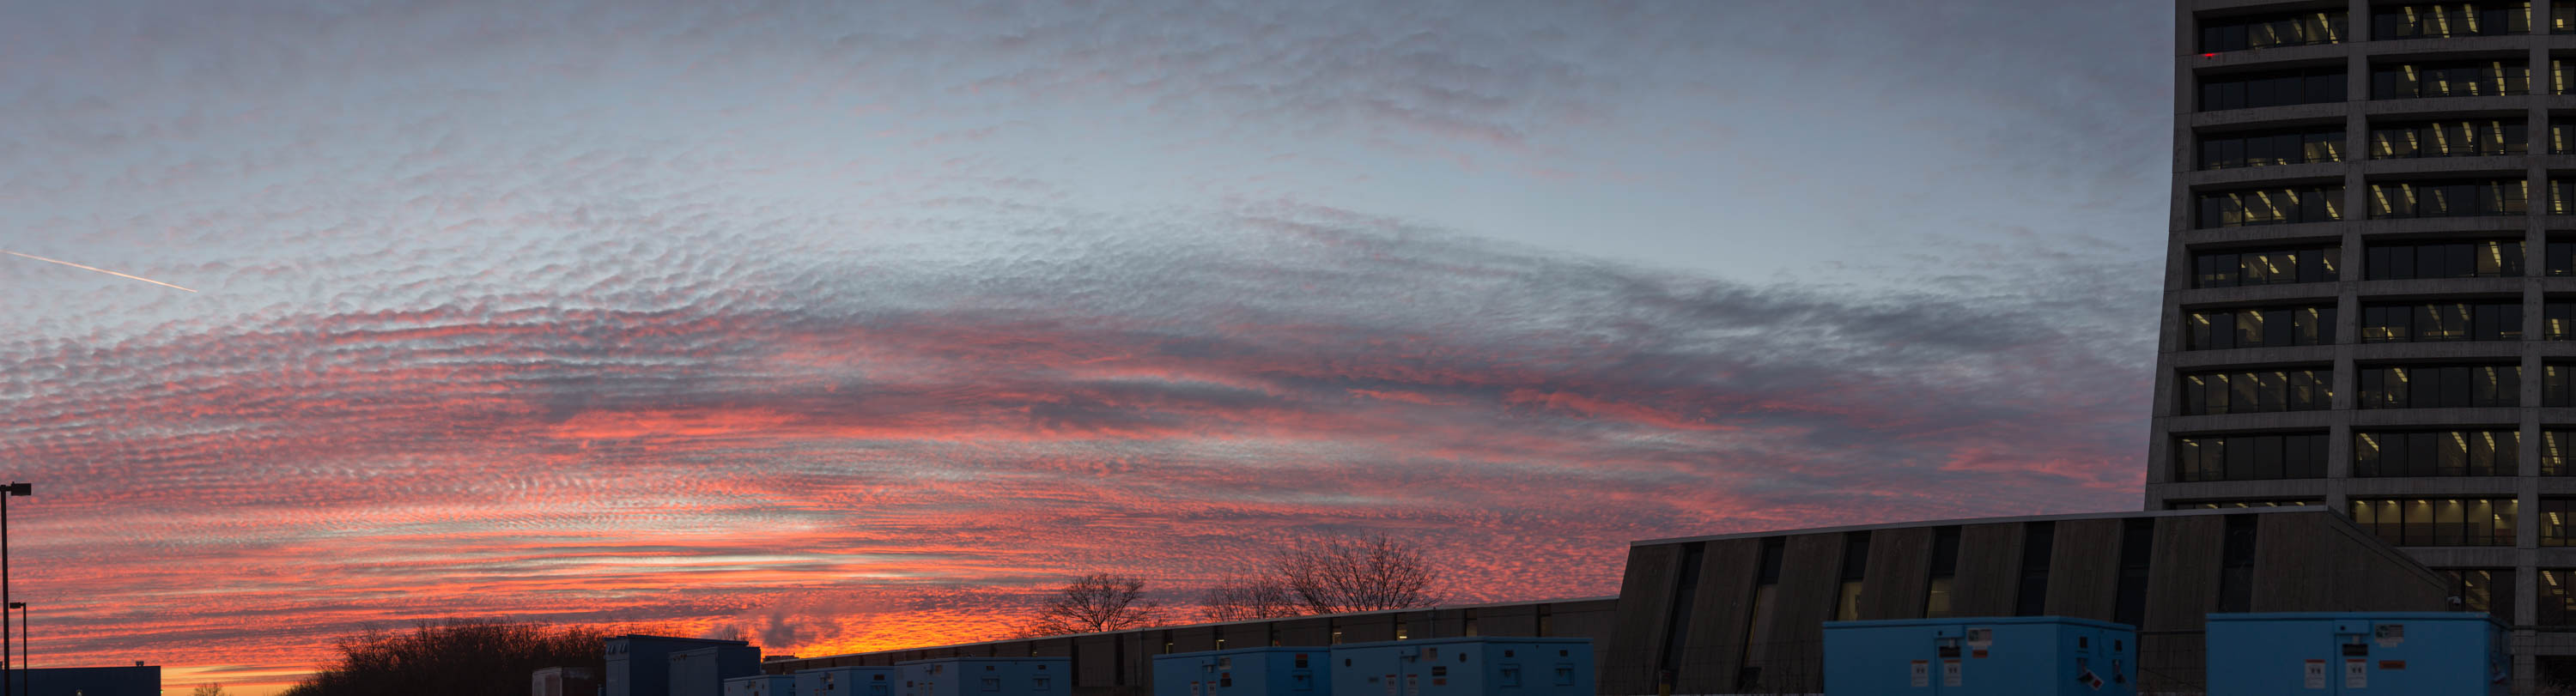 This panoramic view of a sunset as seen from the AZero parking lot was taken on Jan. 29. Photo: Jesus Orduna, Brown University